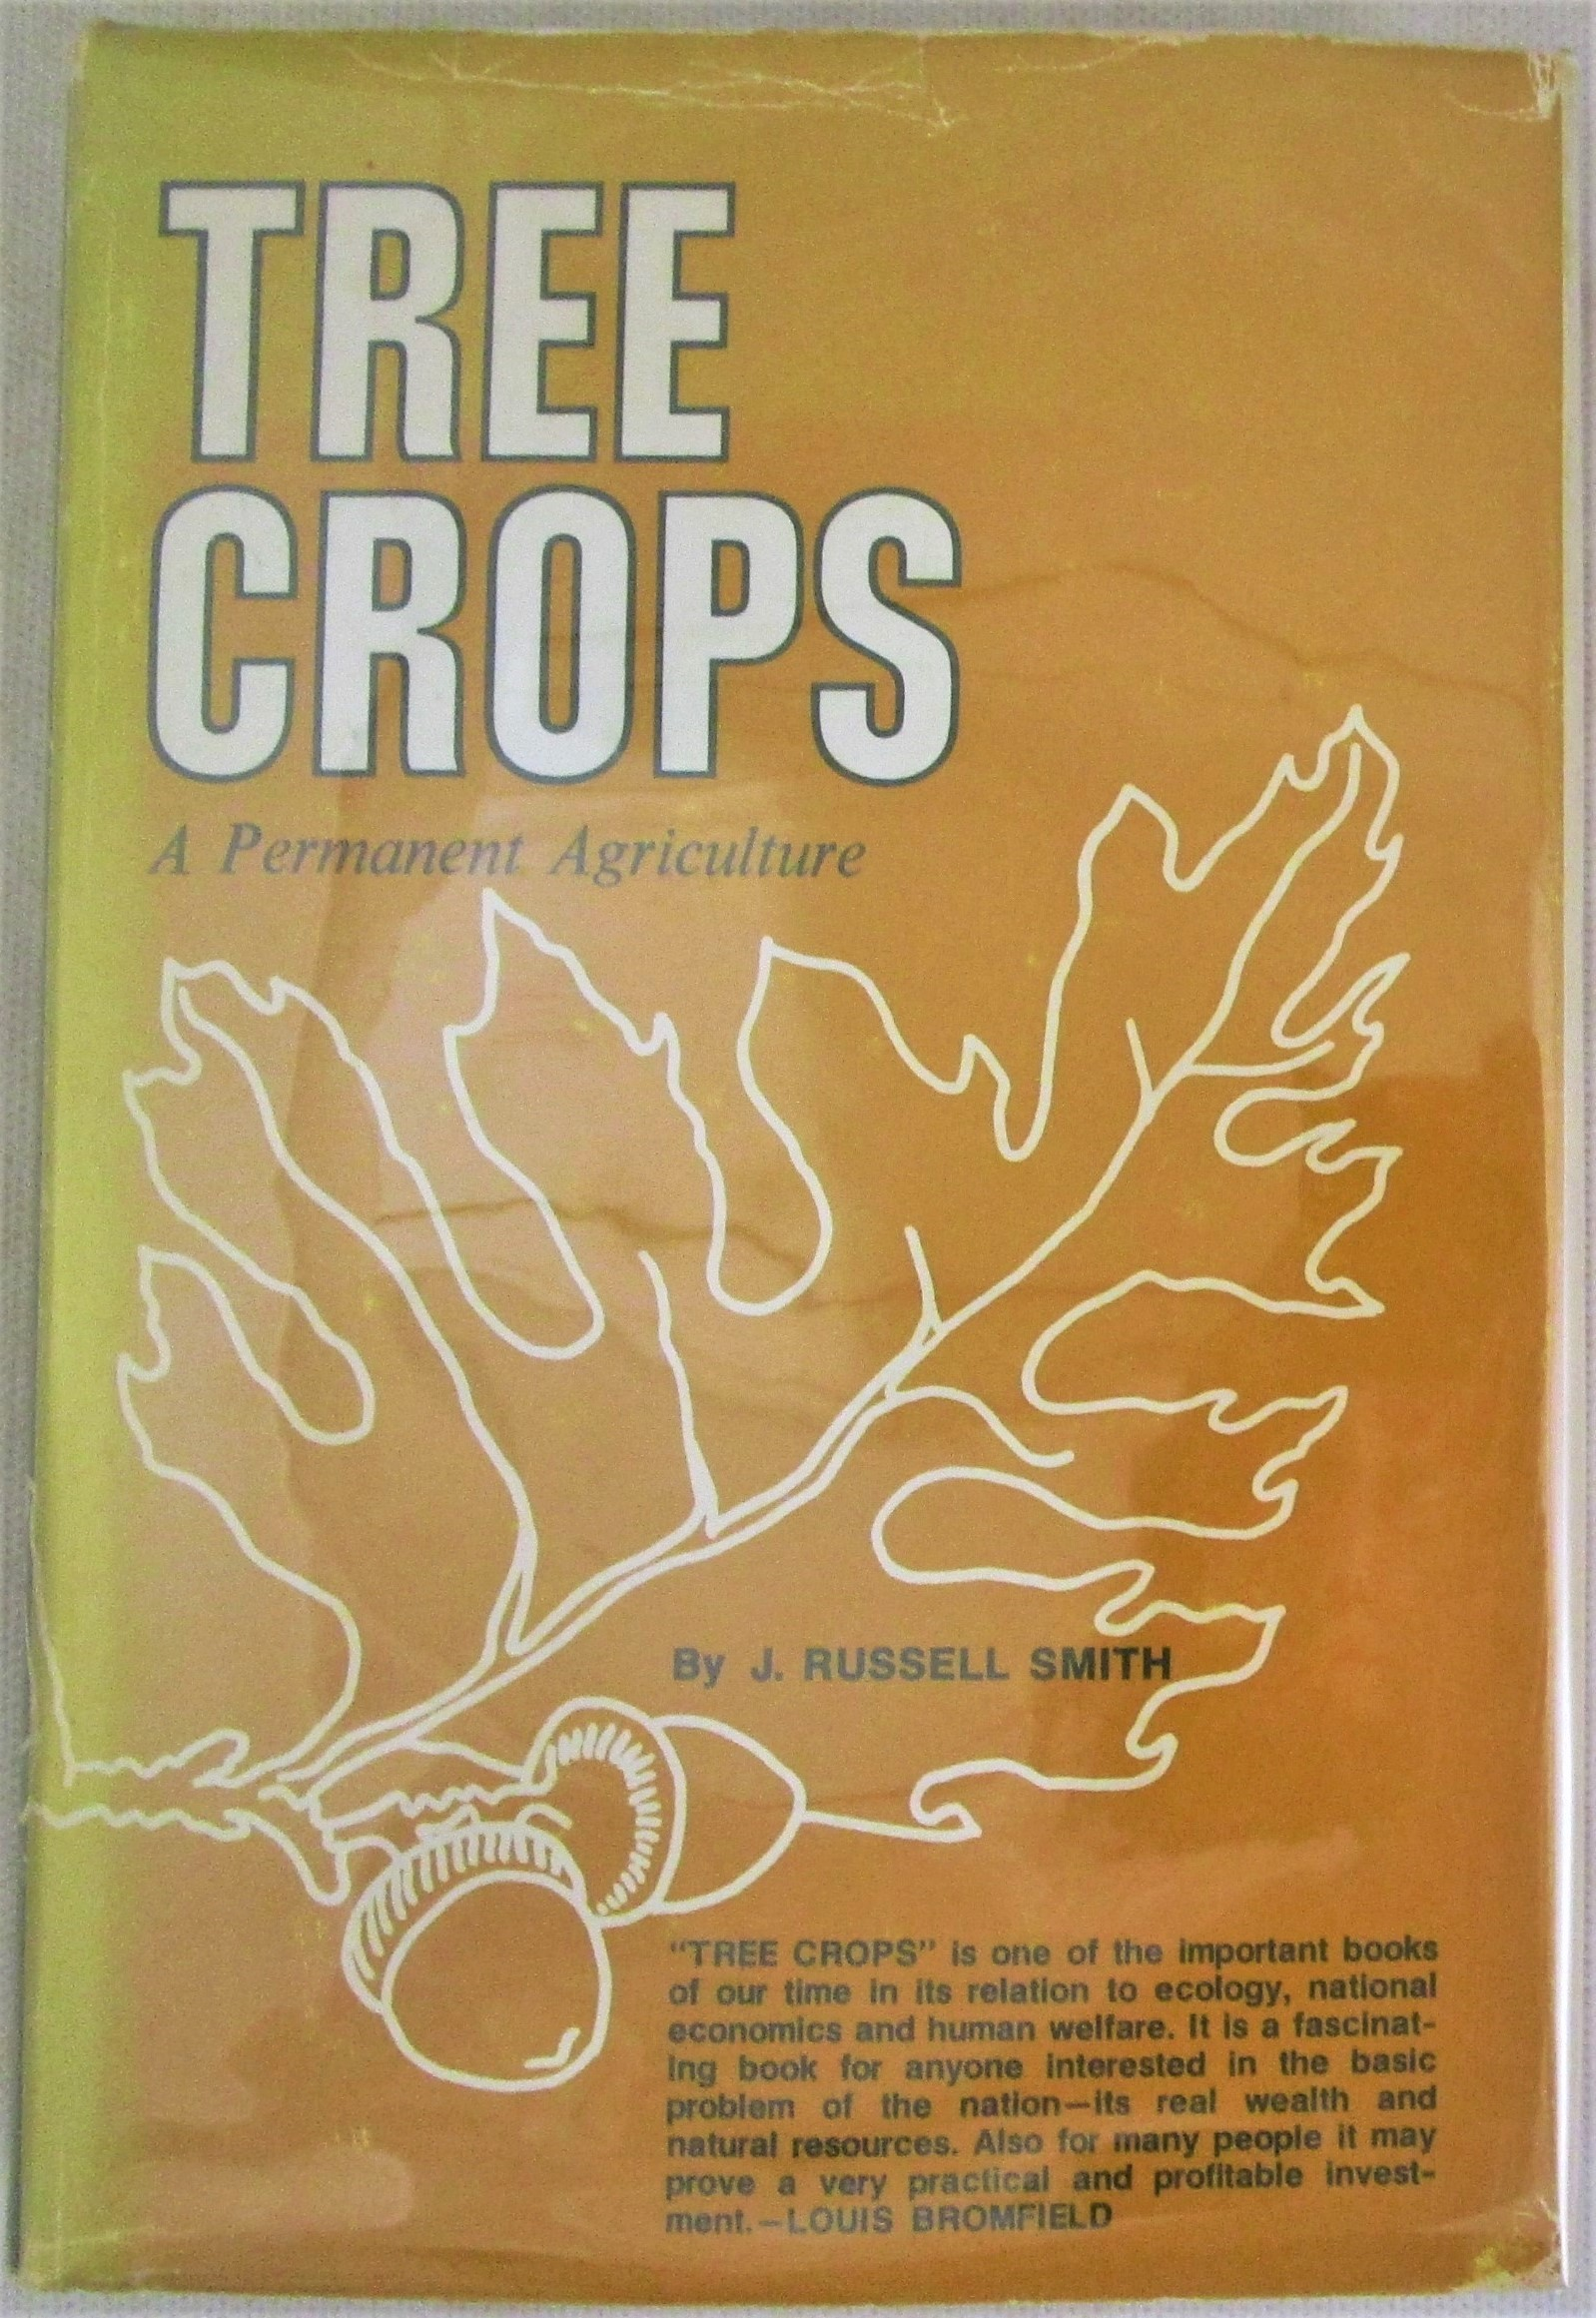 TREE CROPS: A PERMANENT AGRICULTURE, by J. Russell Smith - 1953